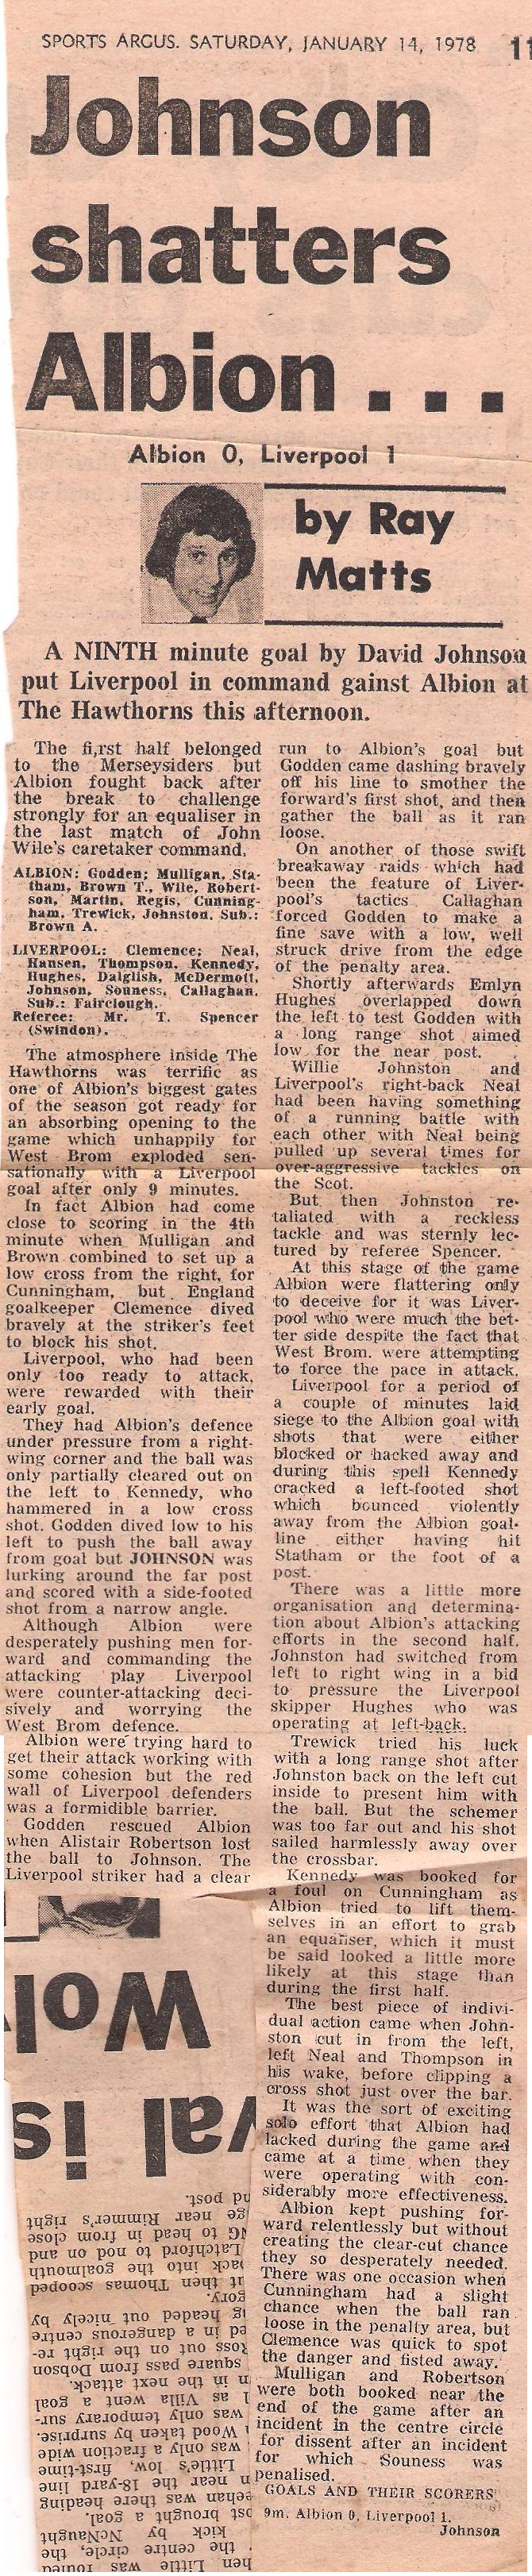 Johnson shatters Albion - 14 January 1978